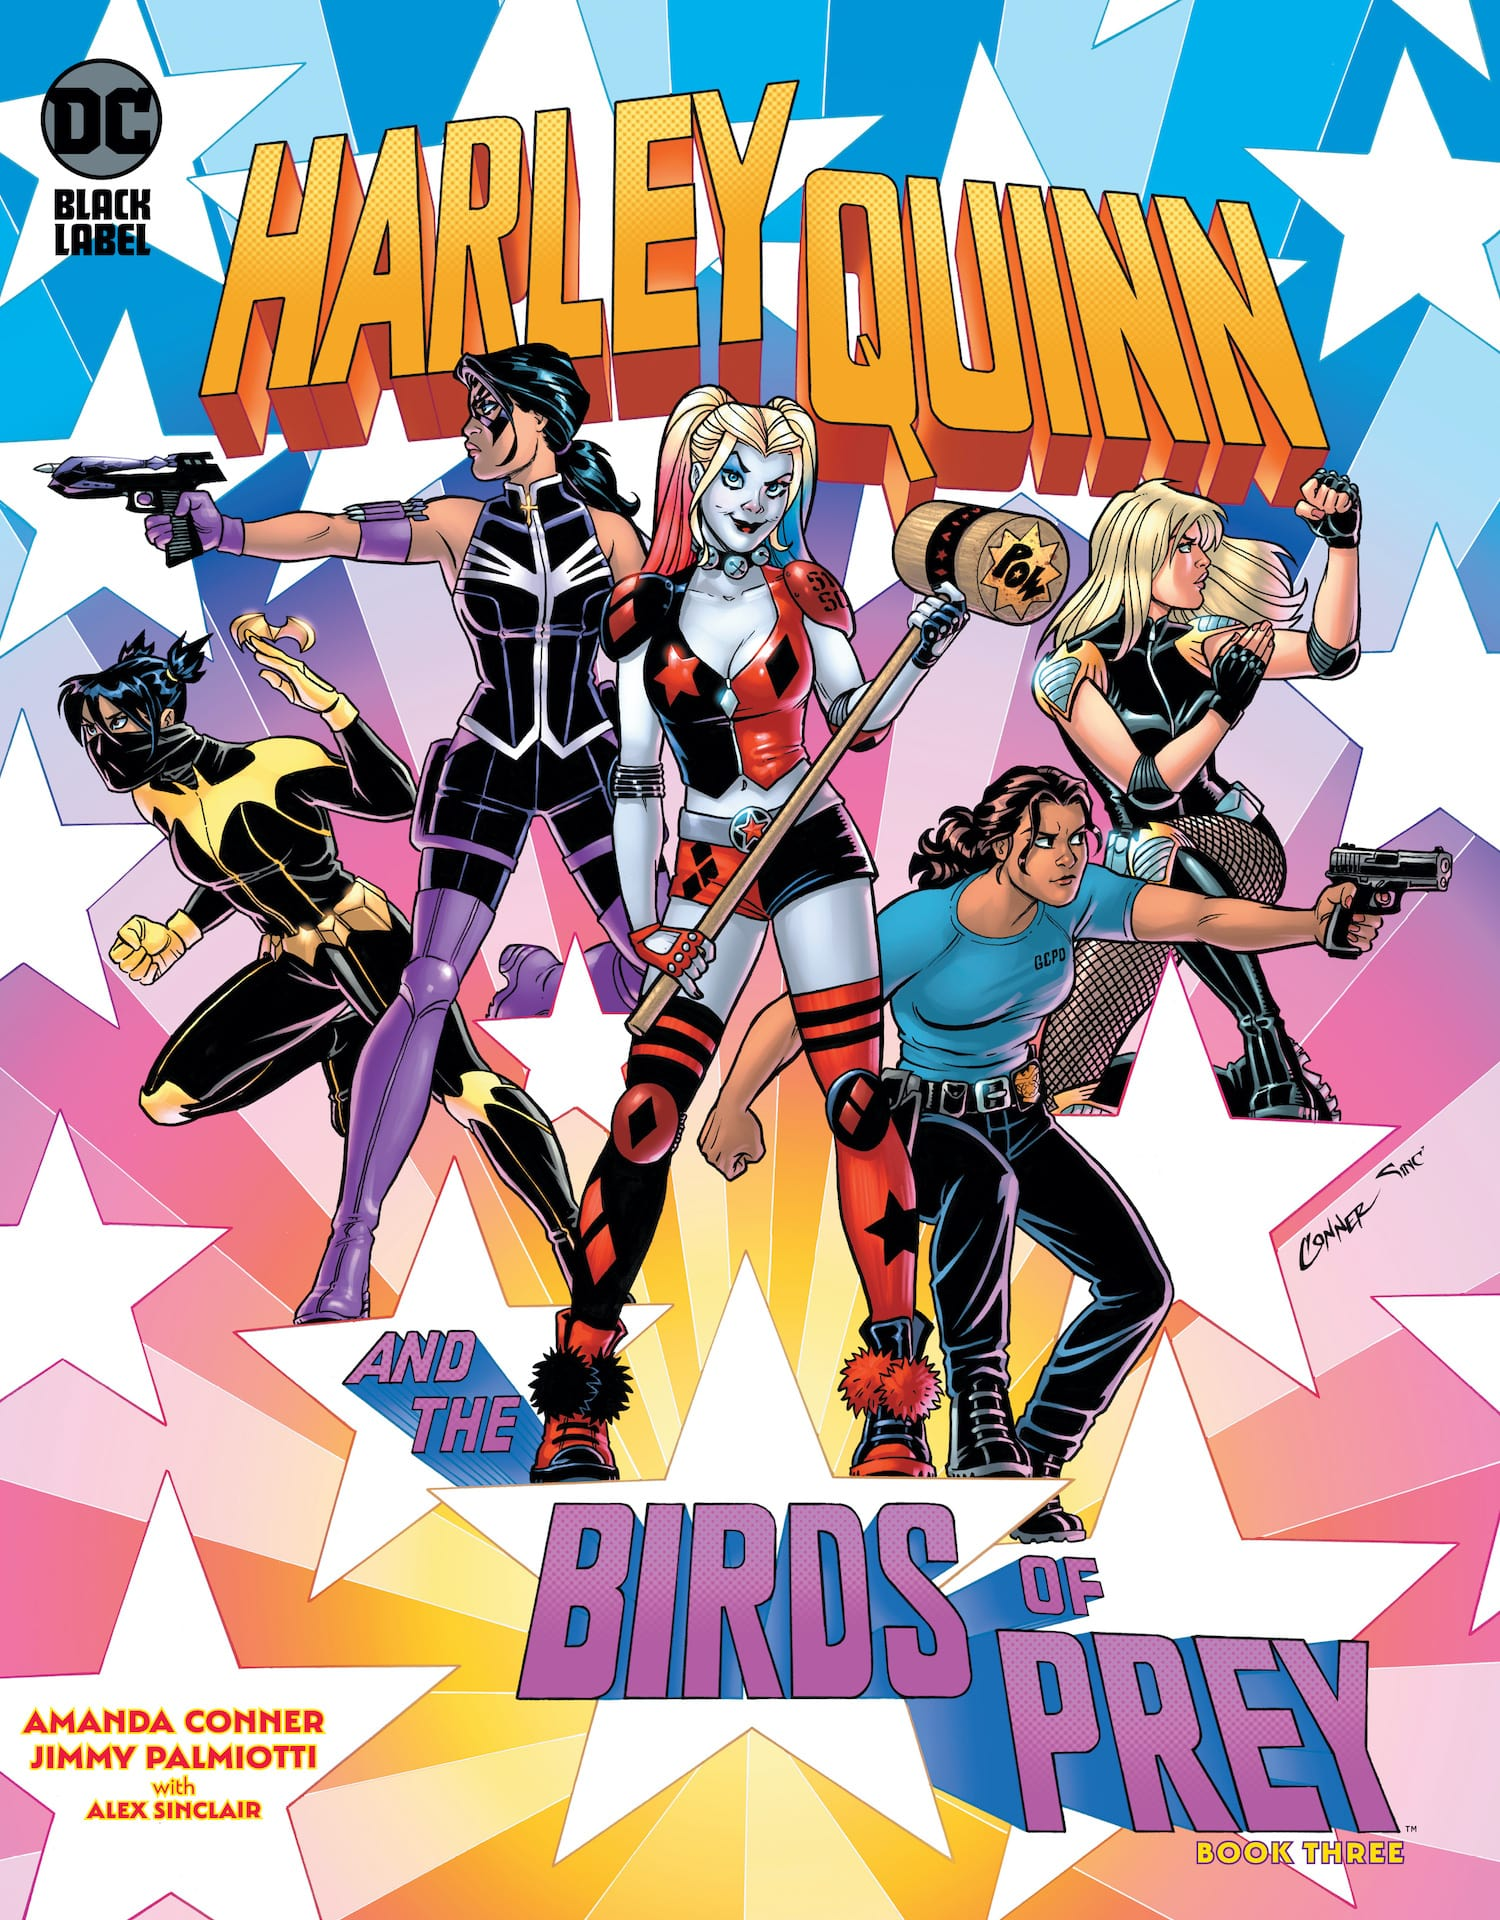 DC Preview: Harley Quinn & the Birds of Prey #3